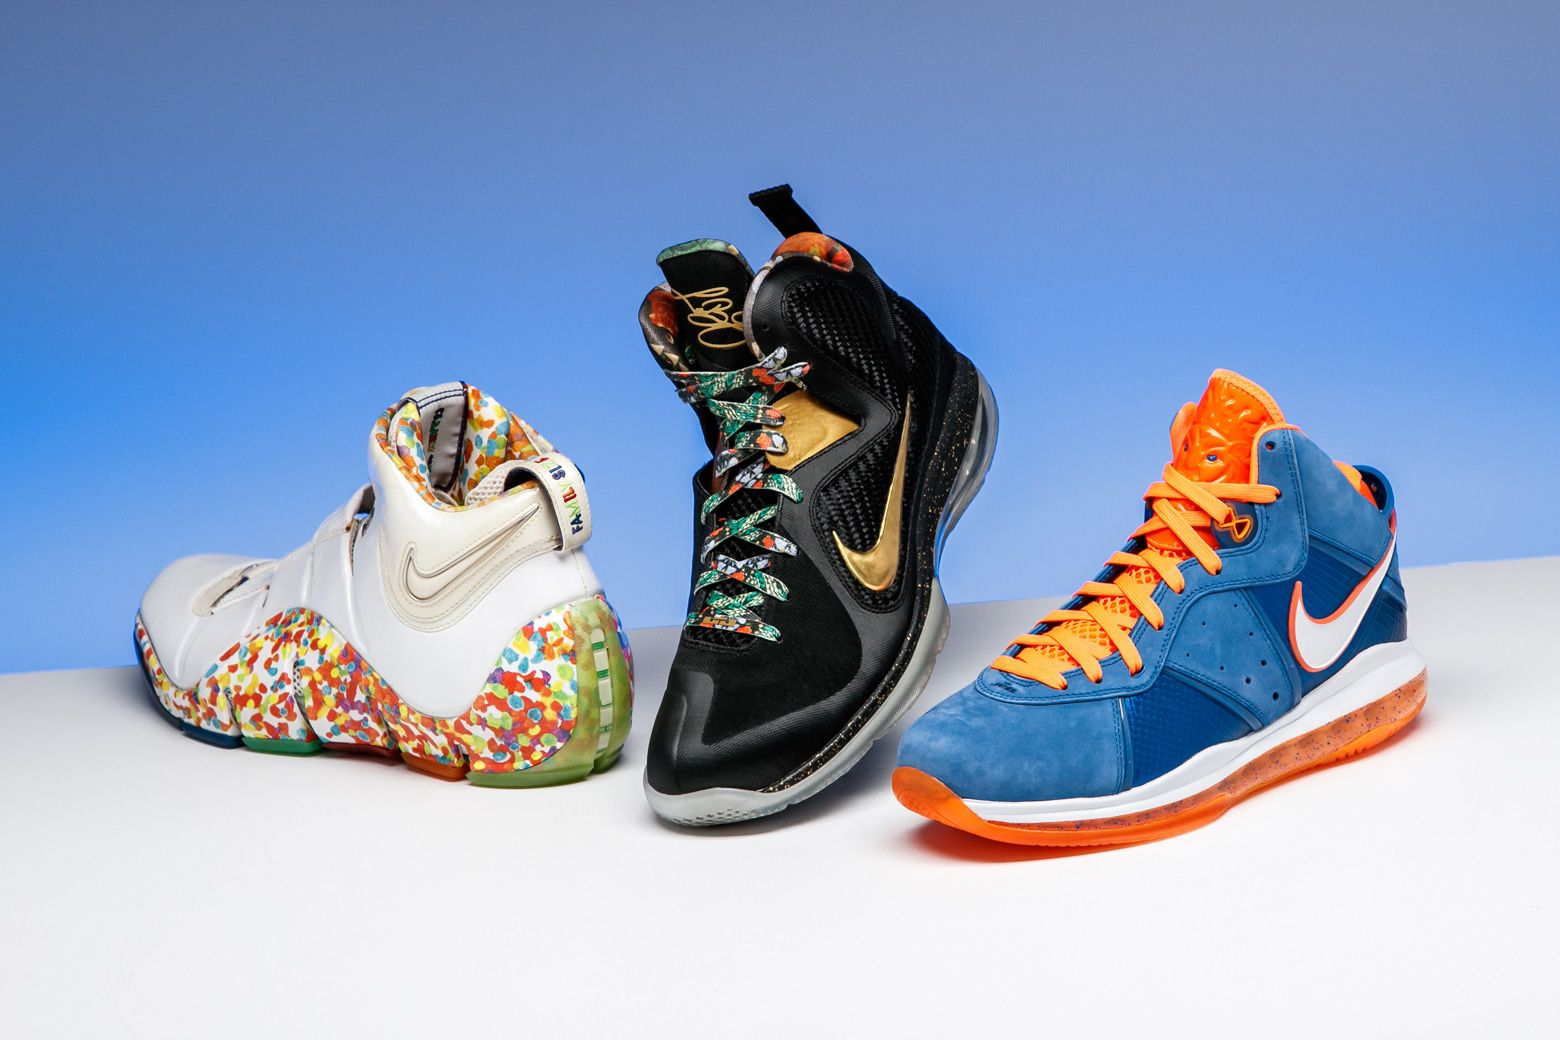 SG s curated selection of LeBron James sneakers includes these grails. f9d5a9cf8532